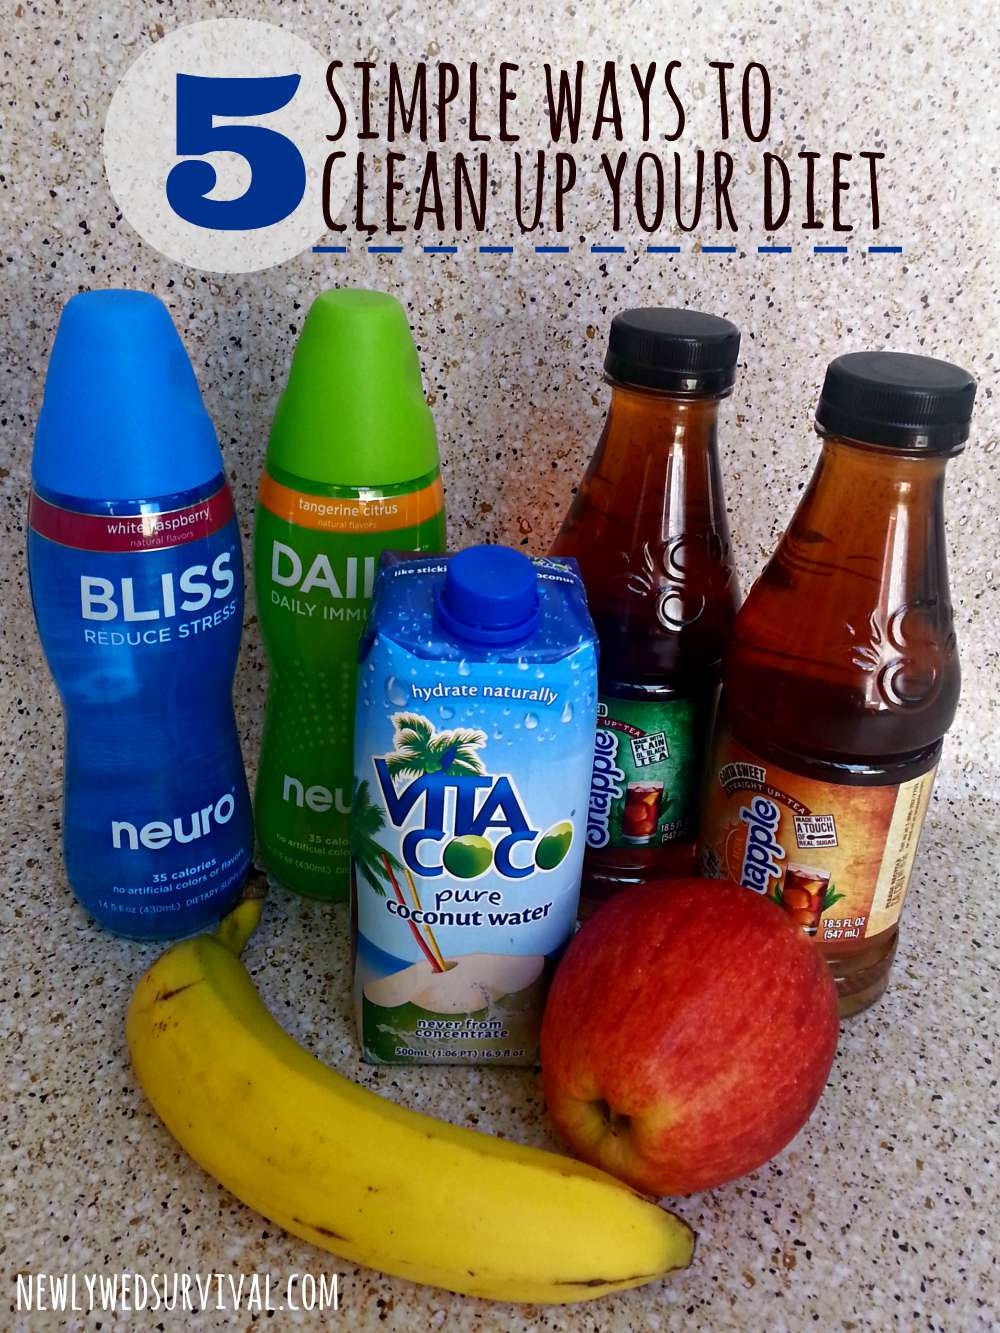 Simple ways to clean up your diet #SipandBeFit